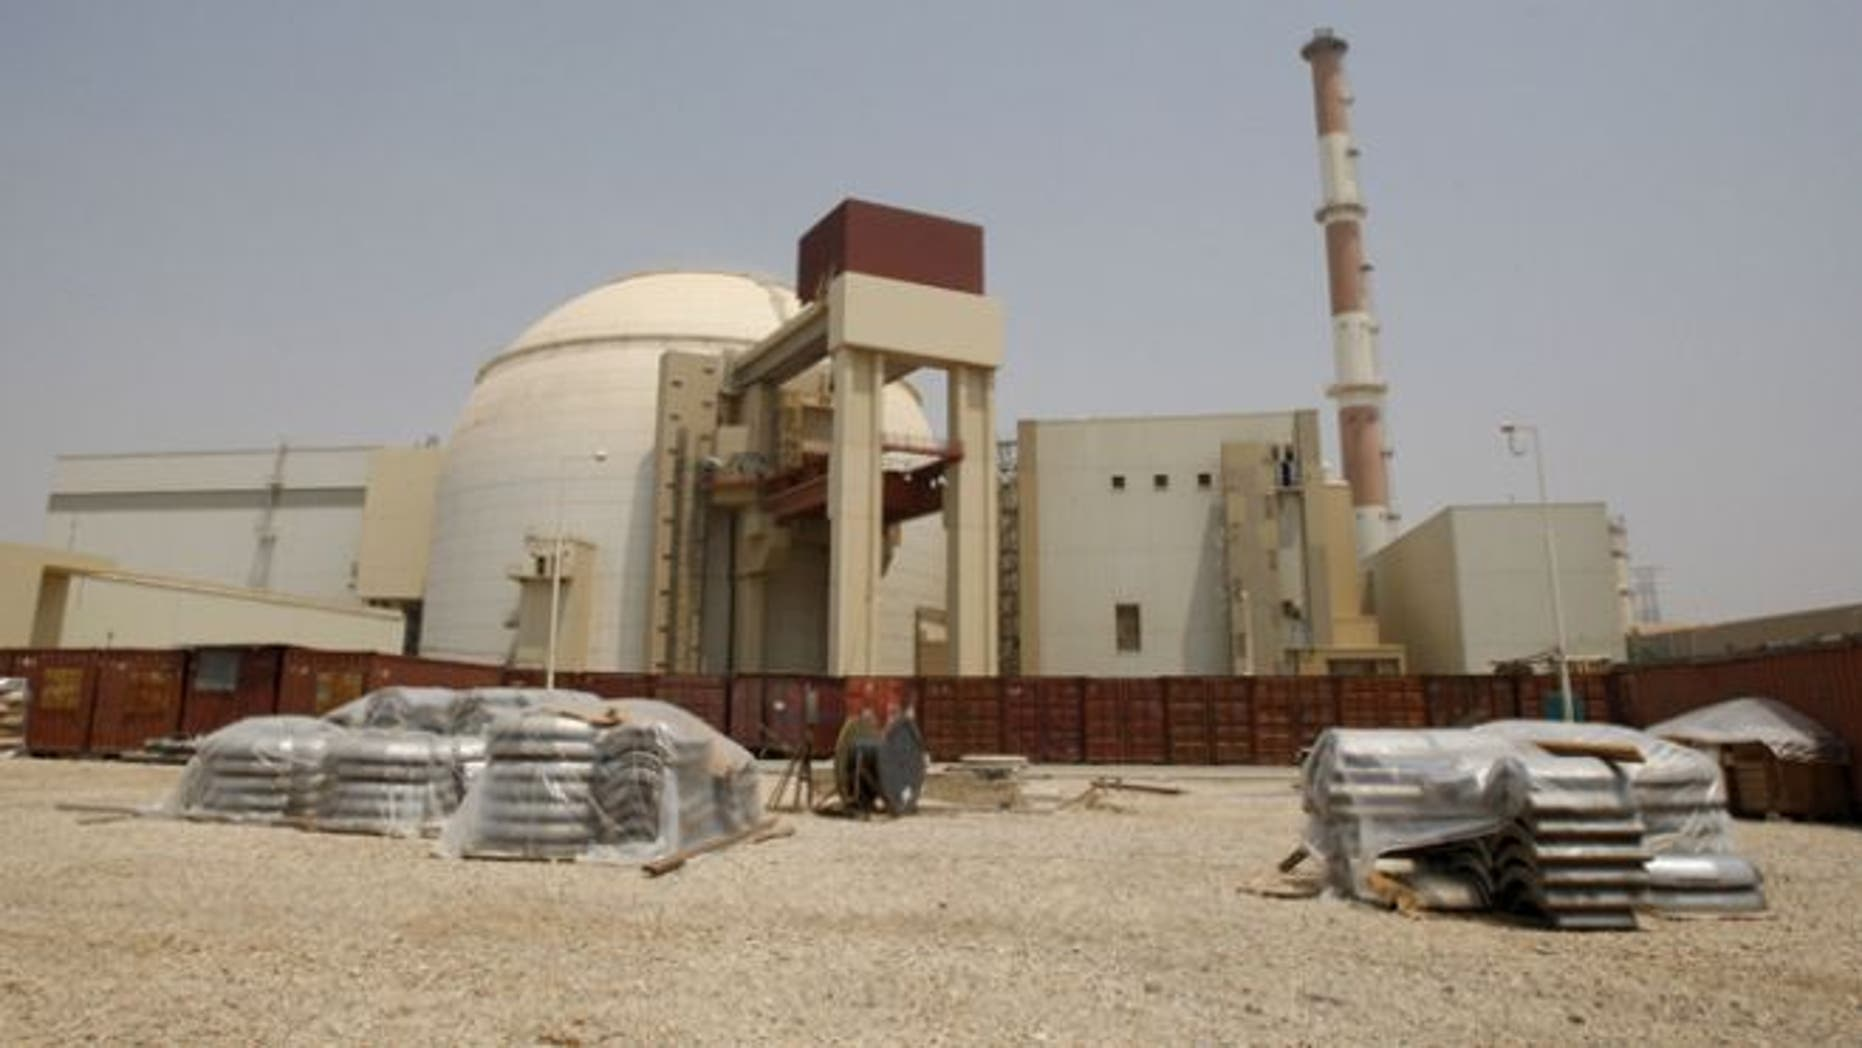 FILE: Aug. 21, 2010: The reactor building of the Bushehr nuclear power plant is seen, outside the southern city of Bushehr, Iran.